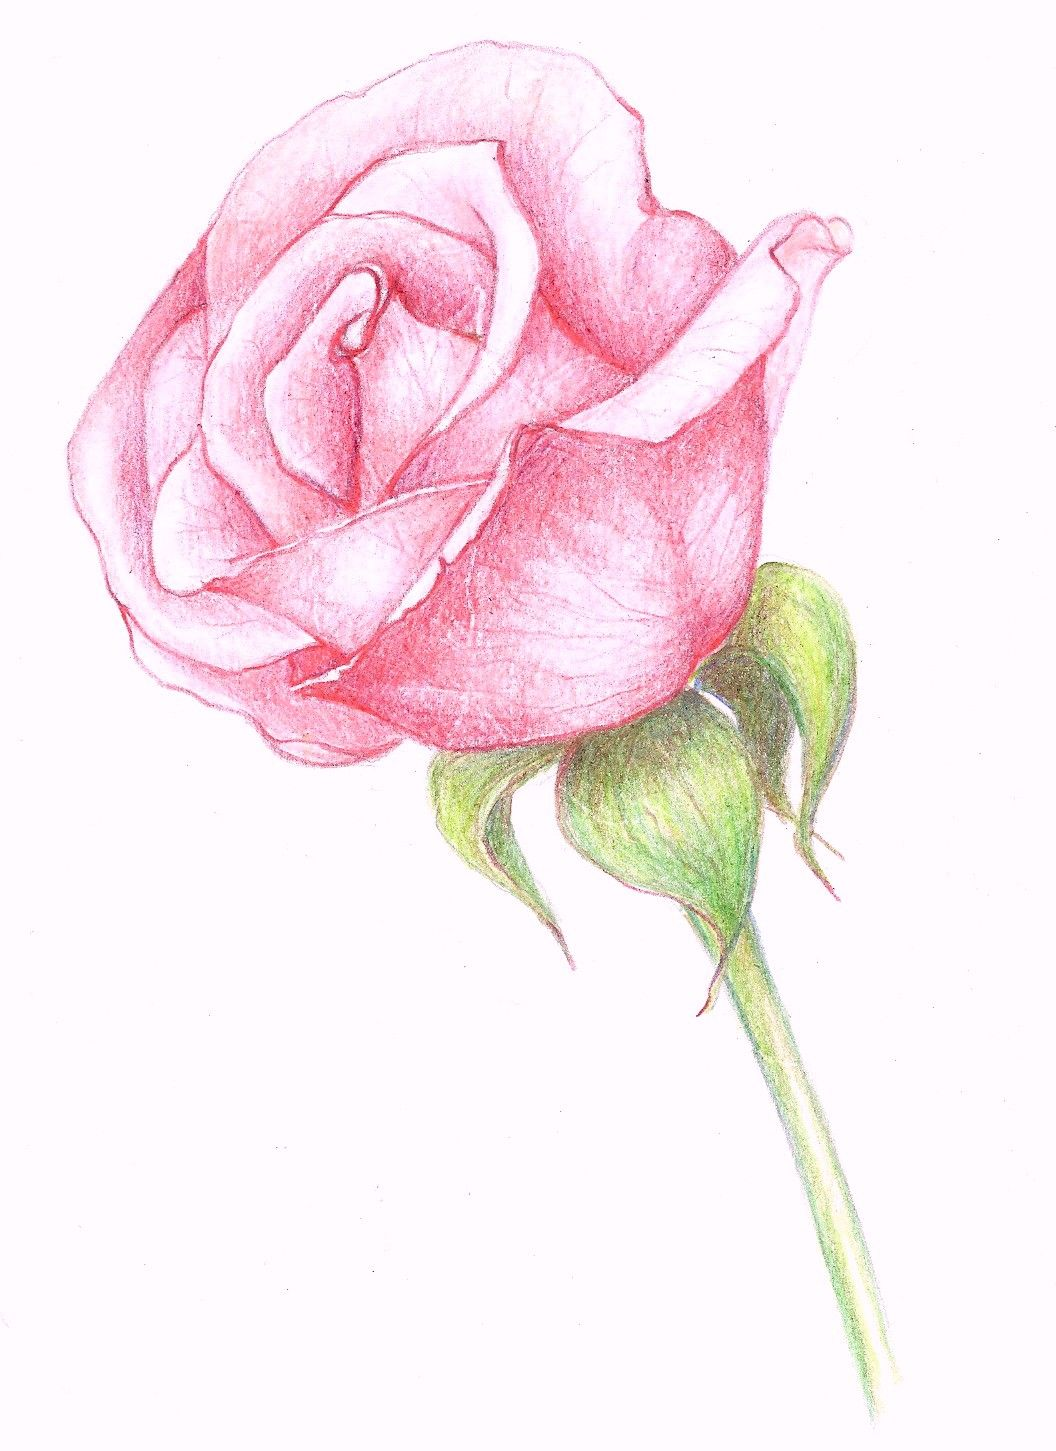 Rose creative ideas pinterest rose drawings pink roses rose drawing and paintings in the earlier post we have shown you some beautiful flower drawings now in this post we have included some 25 beautiful rose reviewsmspy